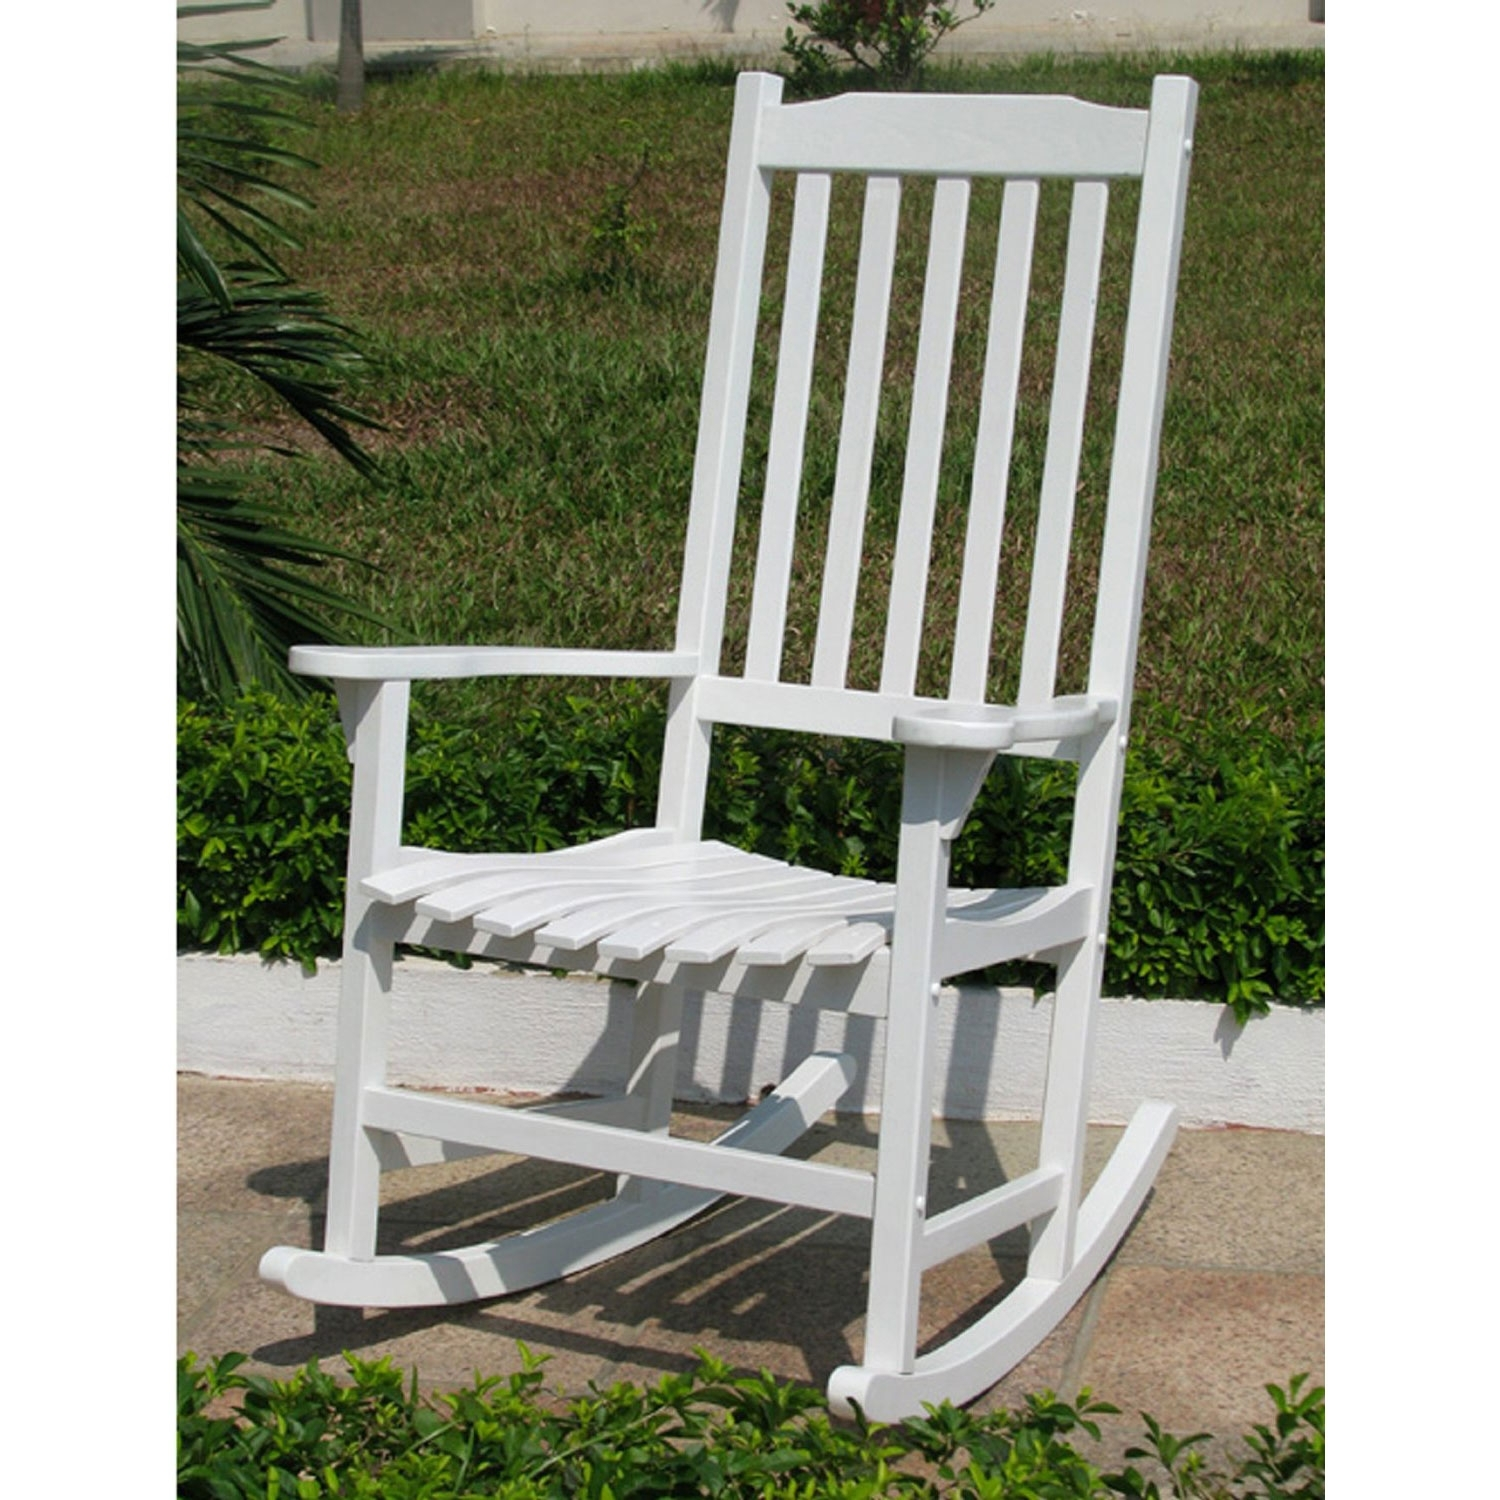 Lovely Cheap Patio Chairs Semco Recycled Plastic Rocking Chair Inside Inexpensive Patio Rocking Chairs (#4 of 15)